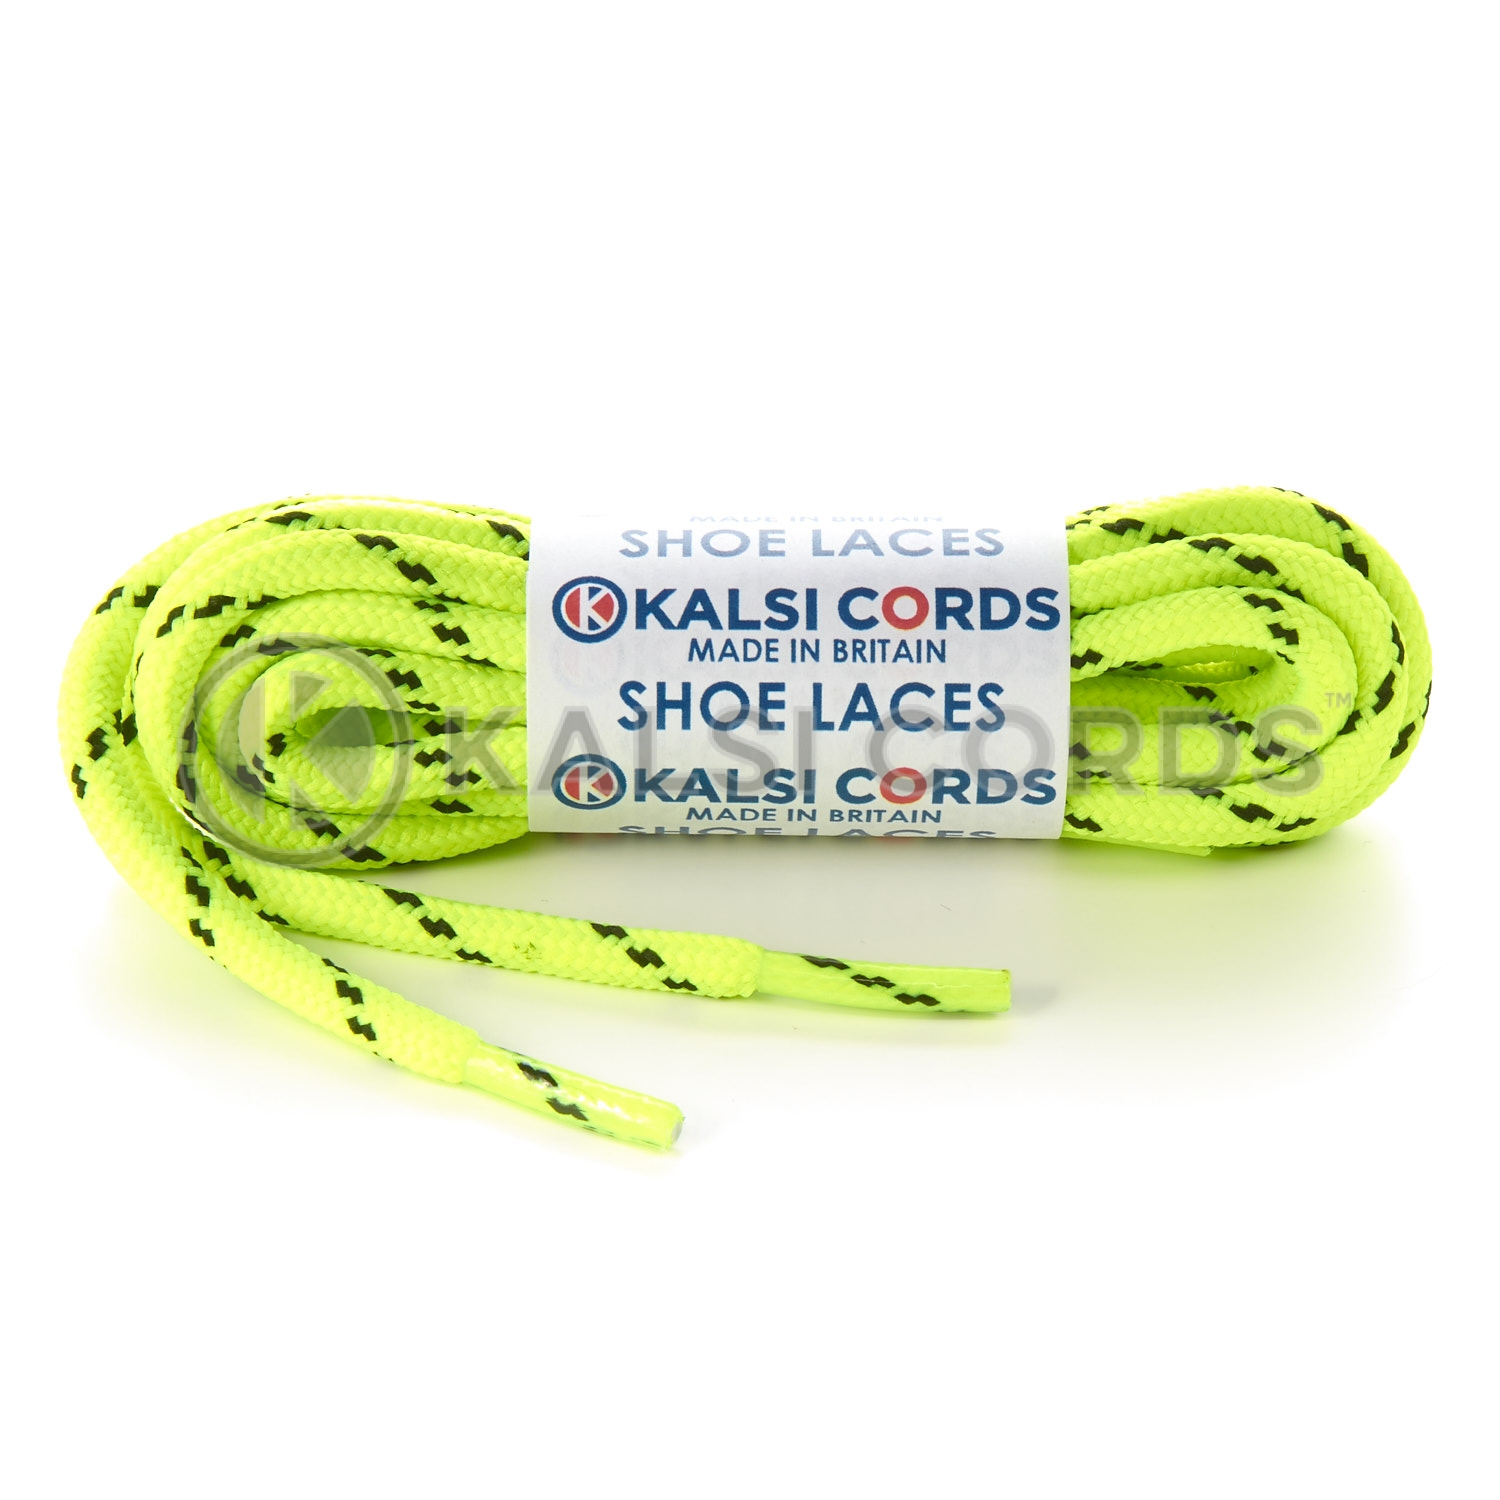 T621 5mm Round Cord Fluorescent Shoe Laces Yellow Black 2 Fleck Kids Trainers Adults Hiking Walking Boots Kalsi Cords